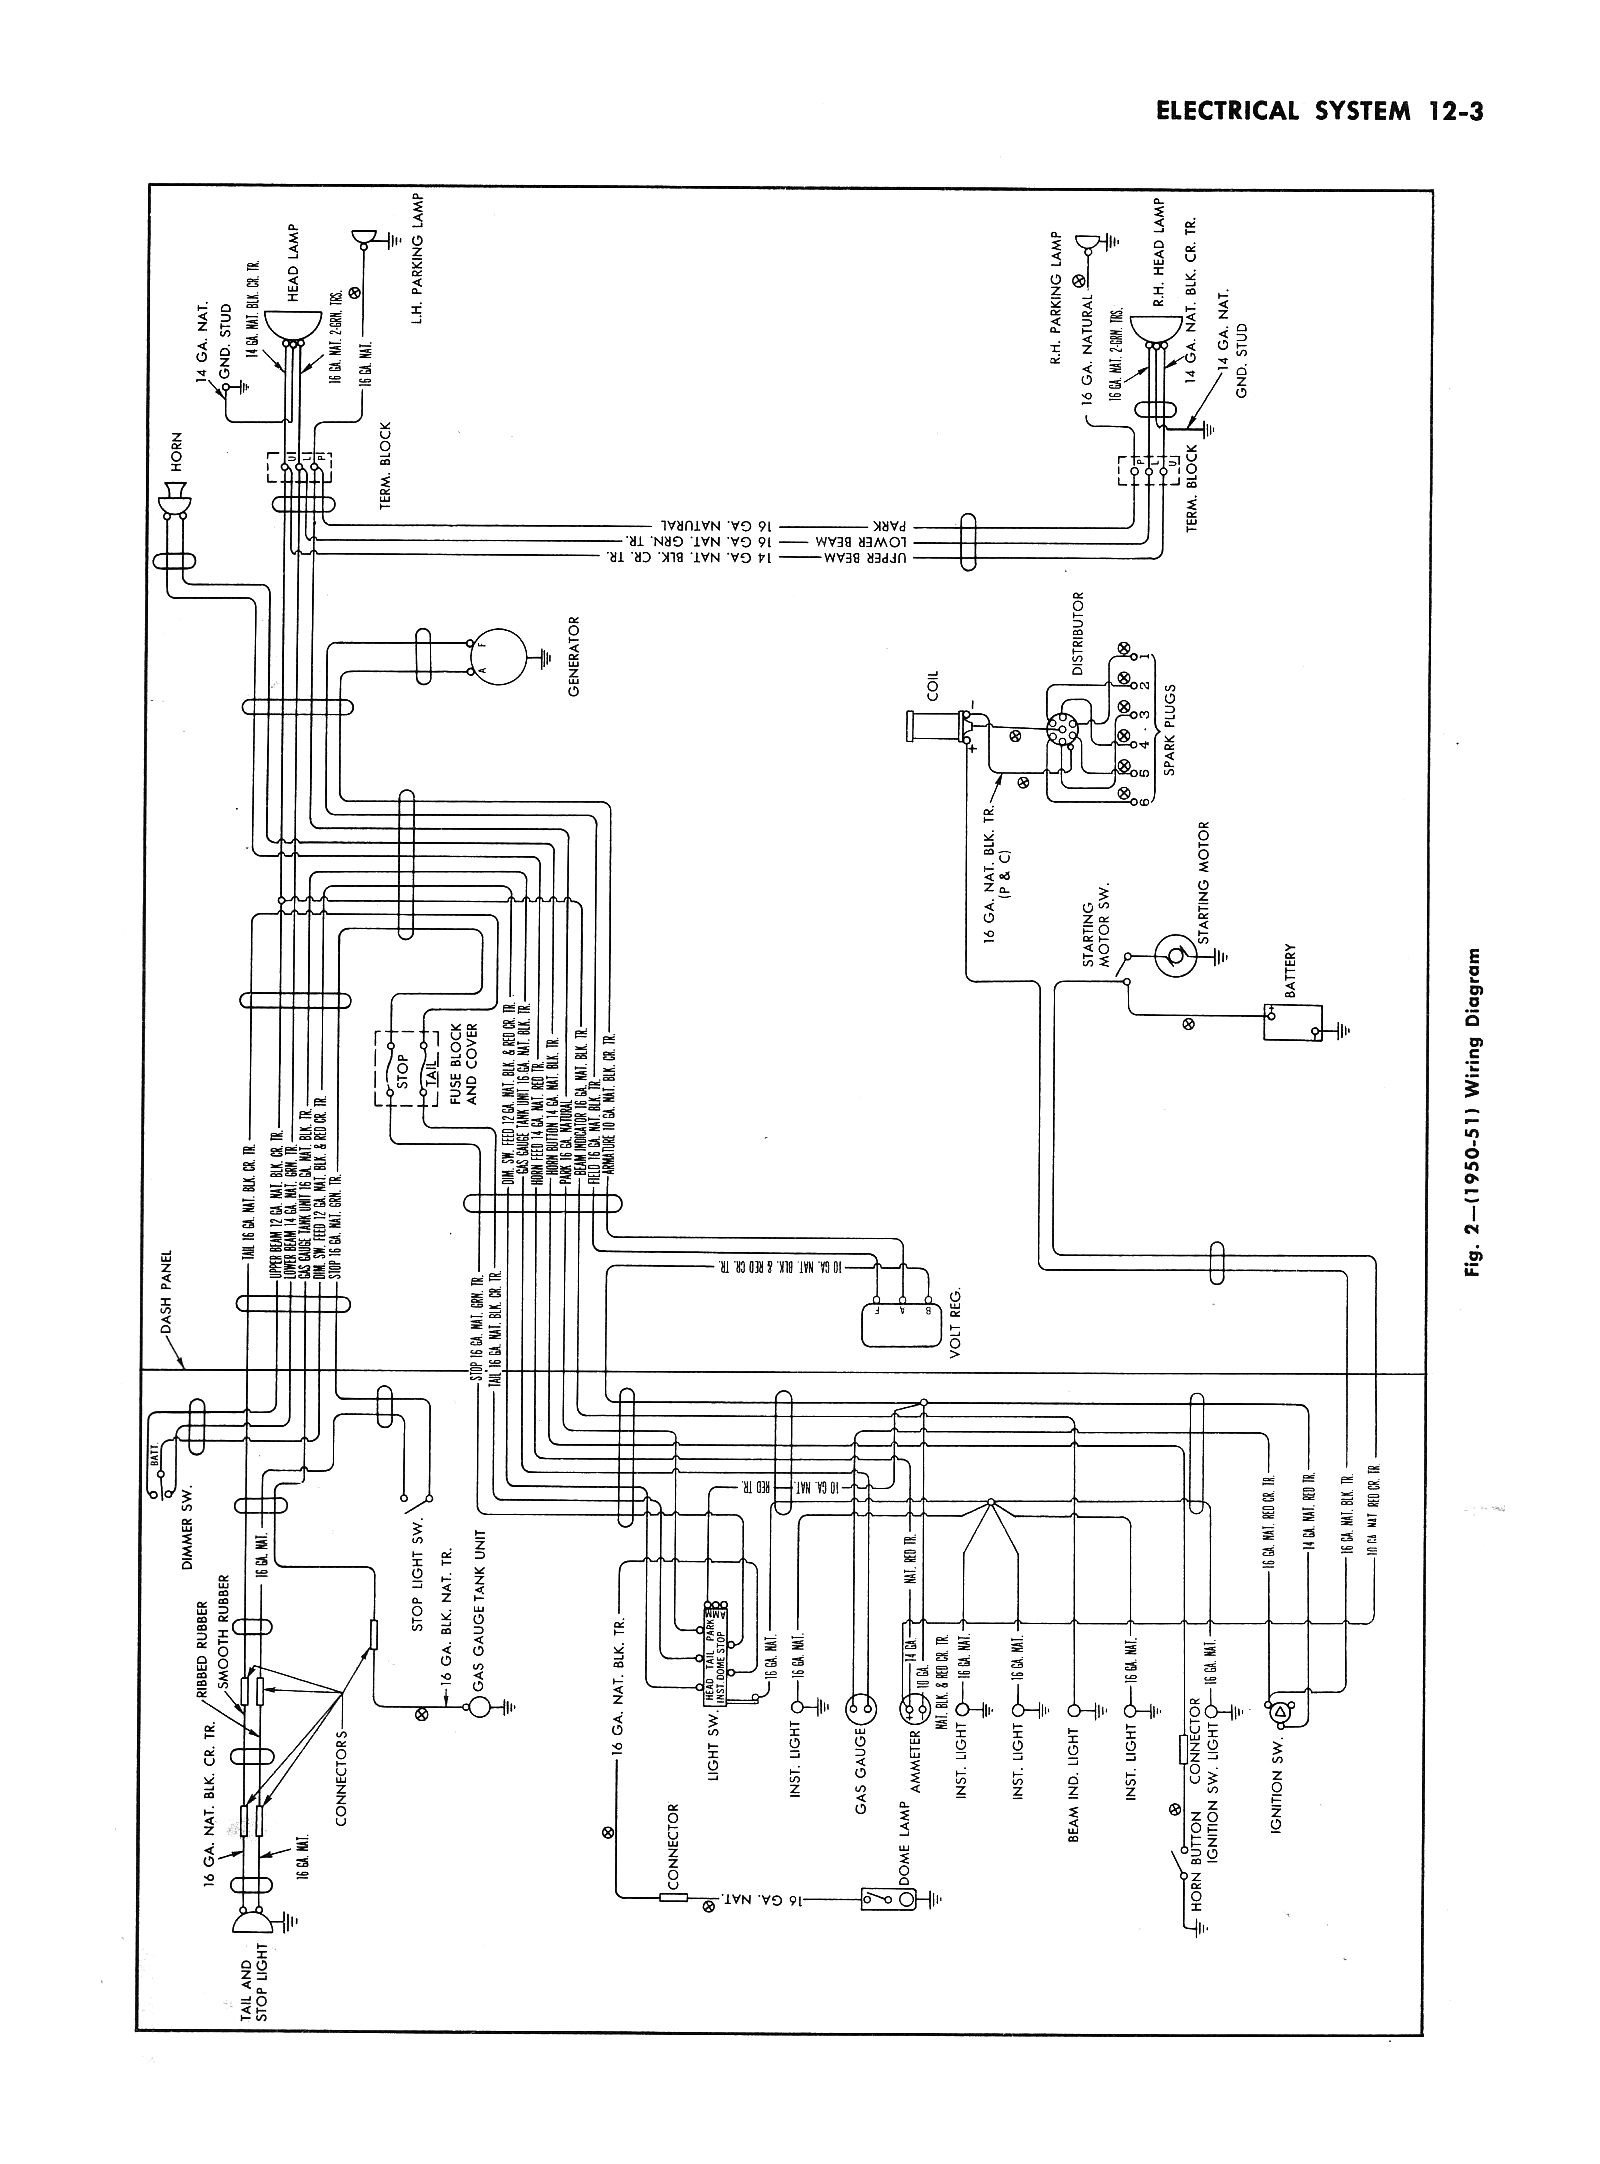 50ctsm1203 chevy wiring diagrams 2003 silverado tail light wiring diagram at aneh.co